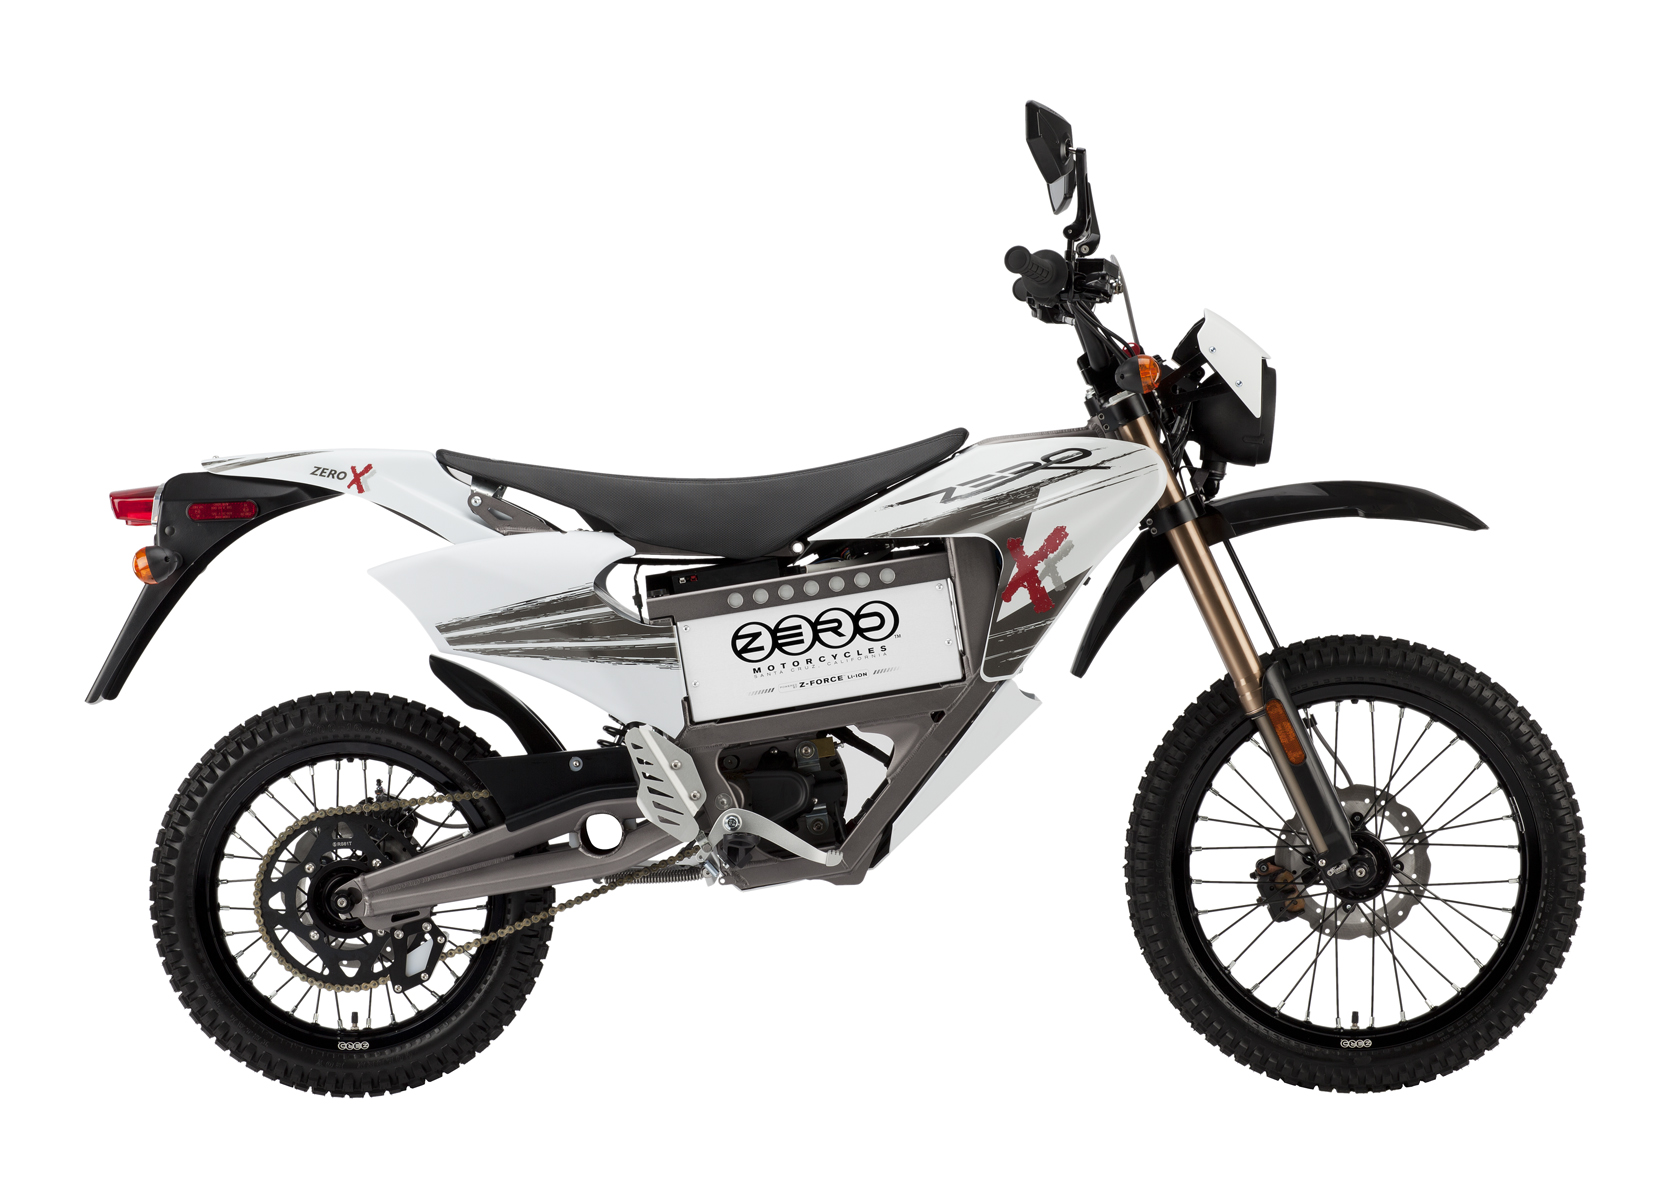 '.2011 Zero X Electric Motorcycle: Profile Right, Street Legal Model, White Background.'